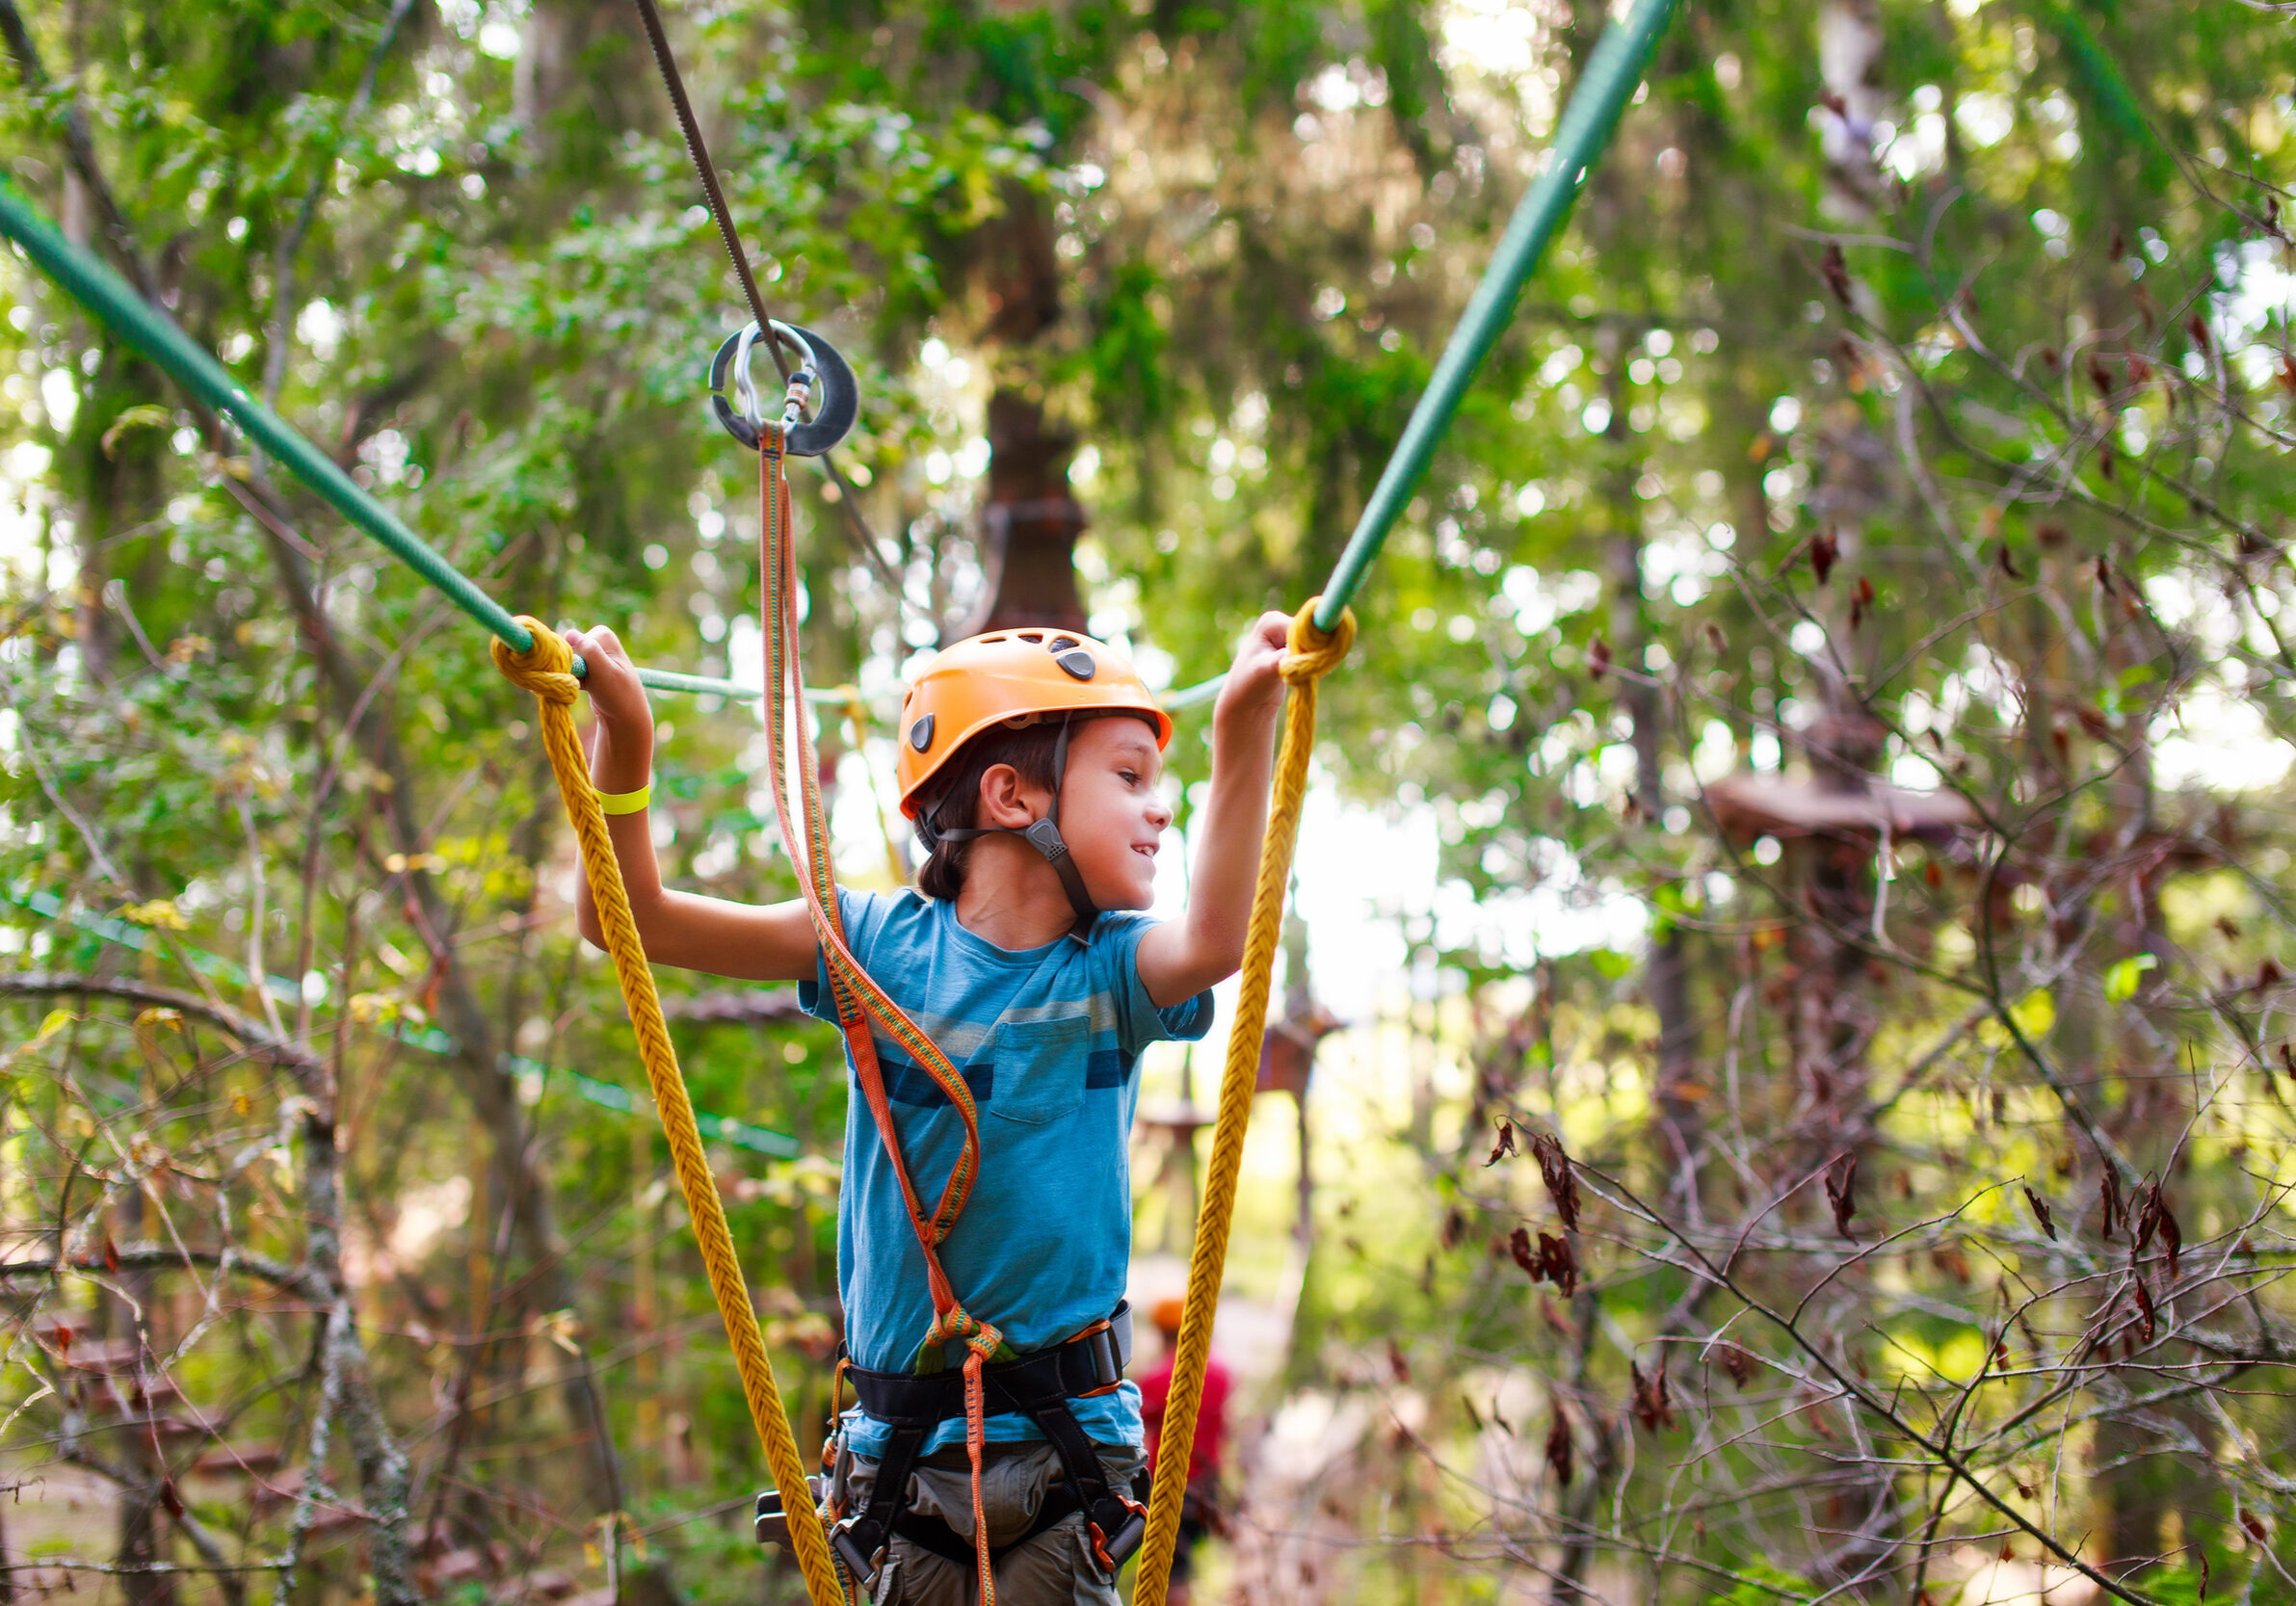 cheerful child bravely overcomes extreme rope route outdoors. ziplining